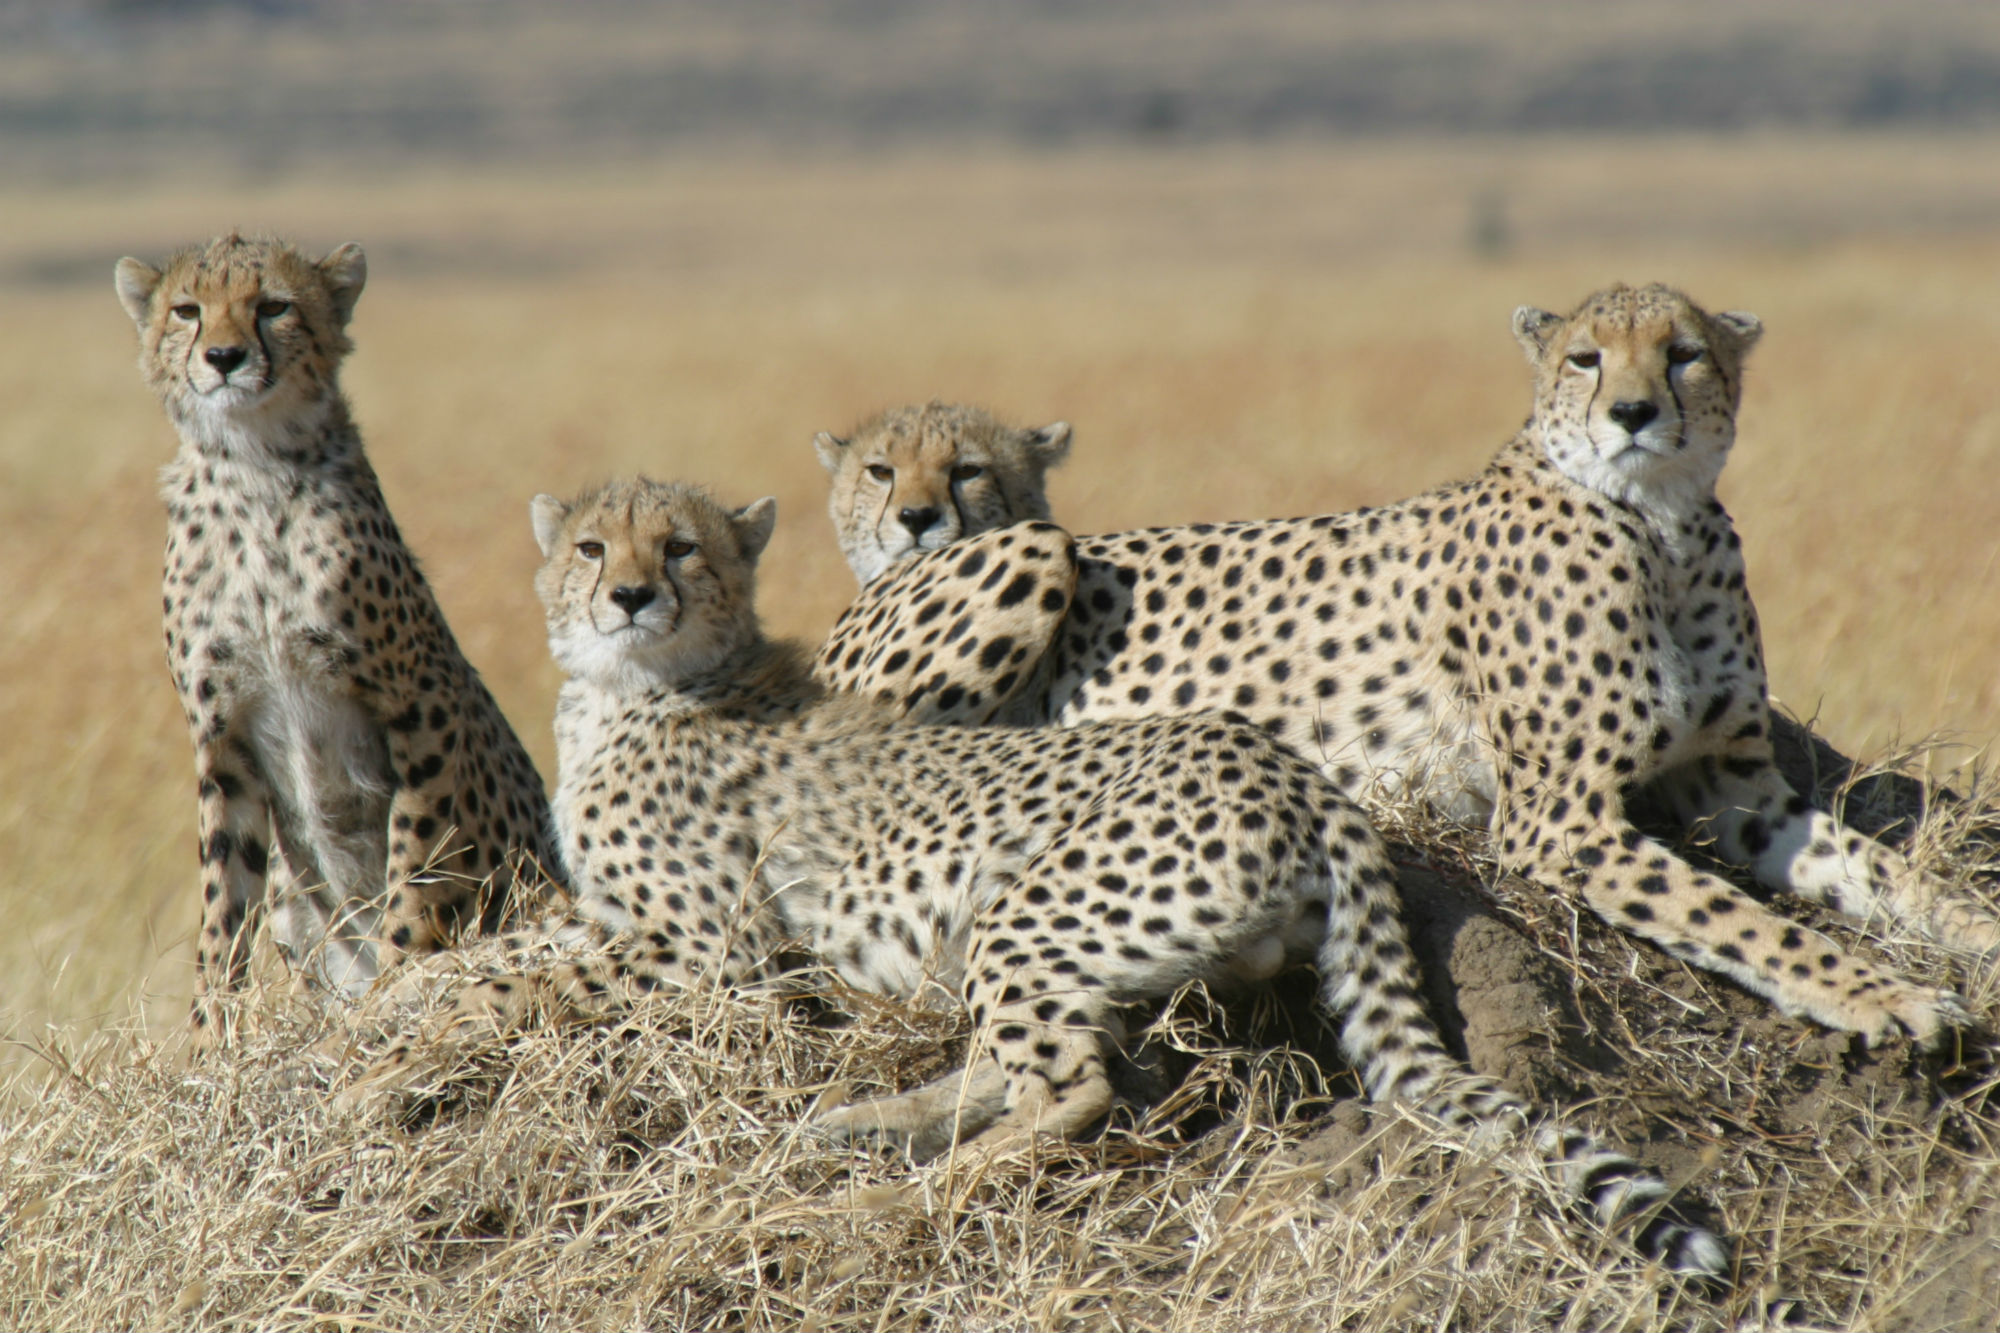 the possible extinction of cheetahs and the need to conserve them The mass extinction of cheetahs has gone unnoticed for far too long and now animal conservation activists are asking that this species be added to the list of endangered animals.